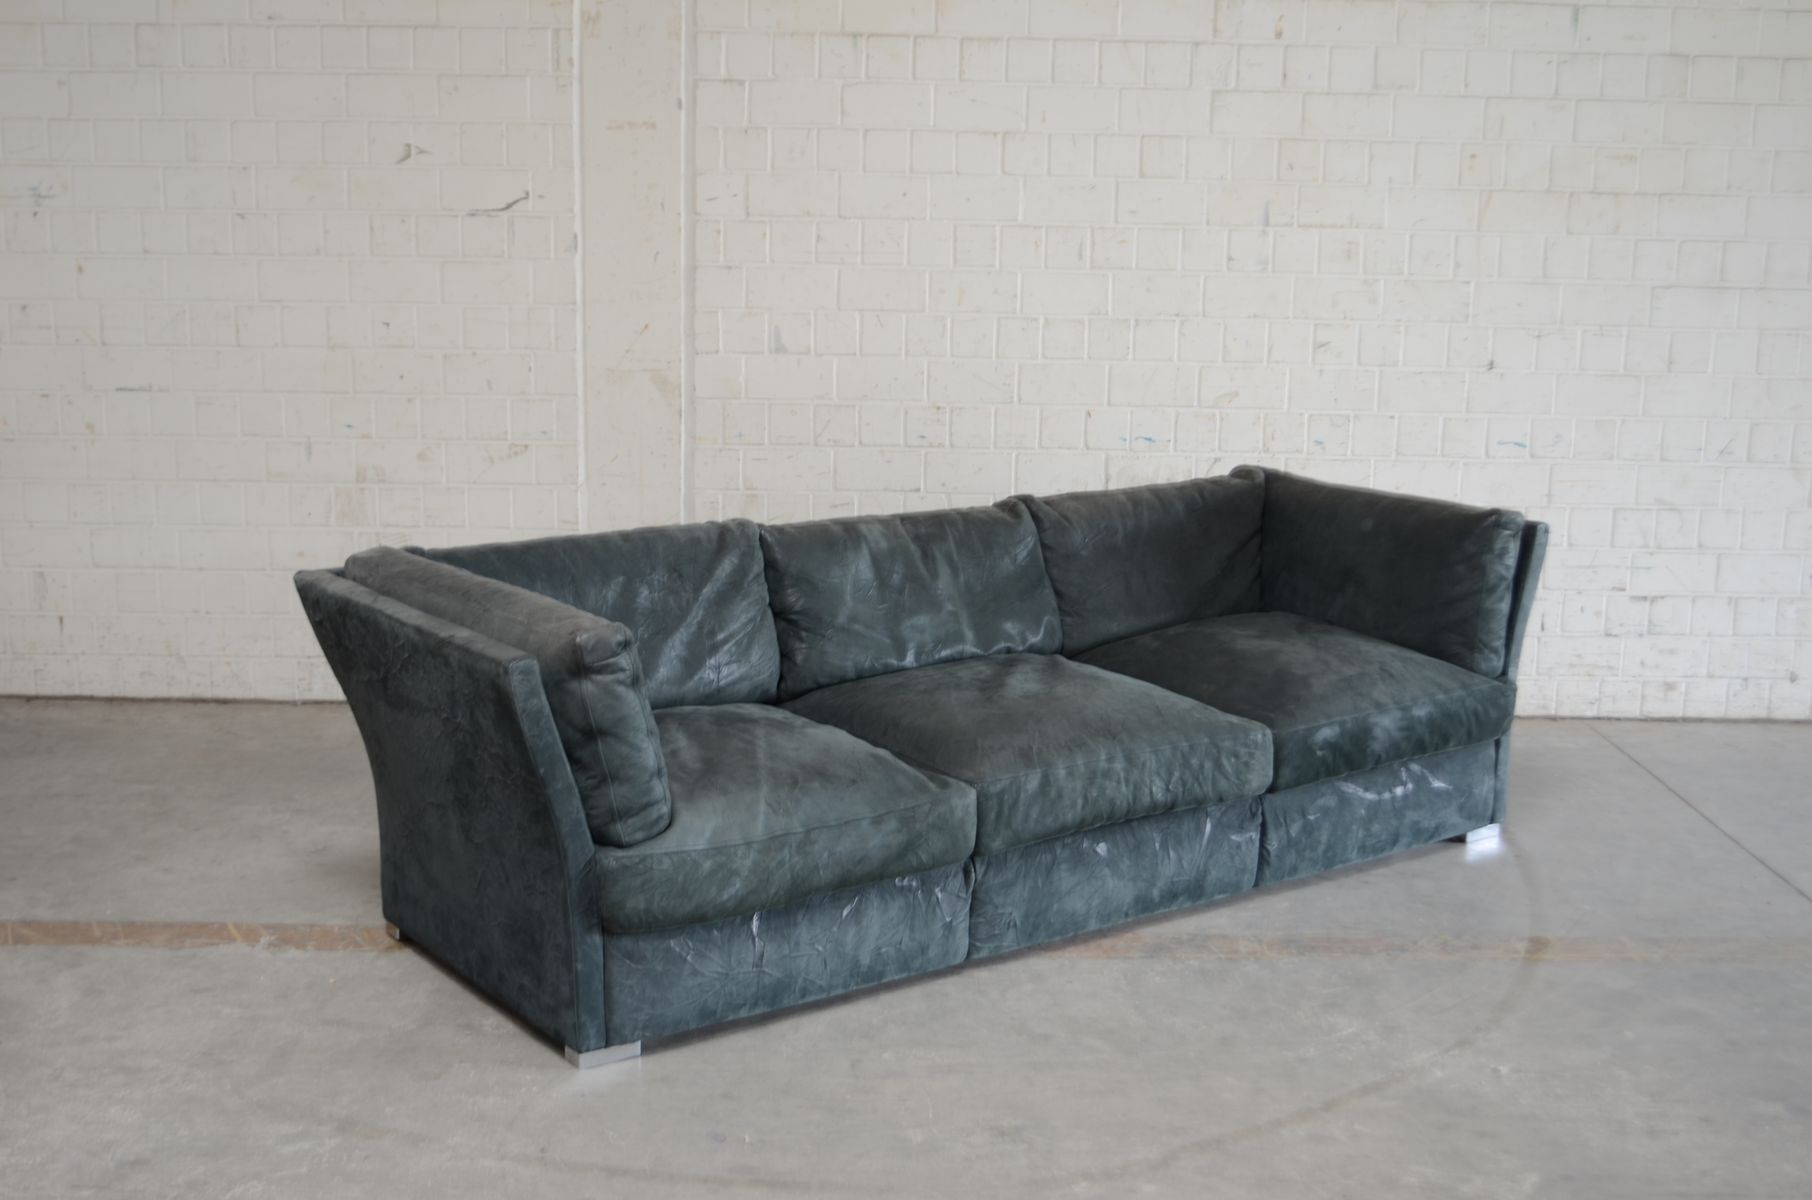 Exceptionnel Nirvana Leather Sofa By Franco Poli For Matteo Grassi, 2006